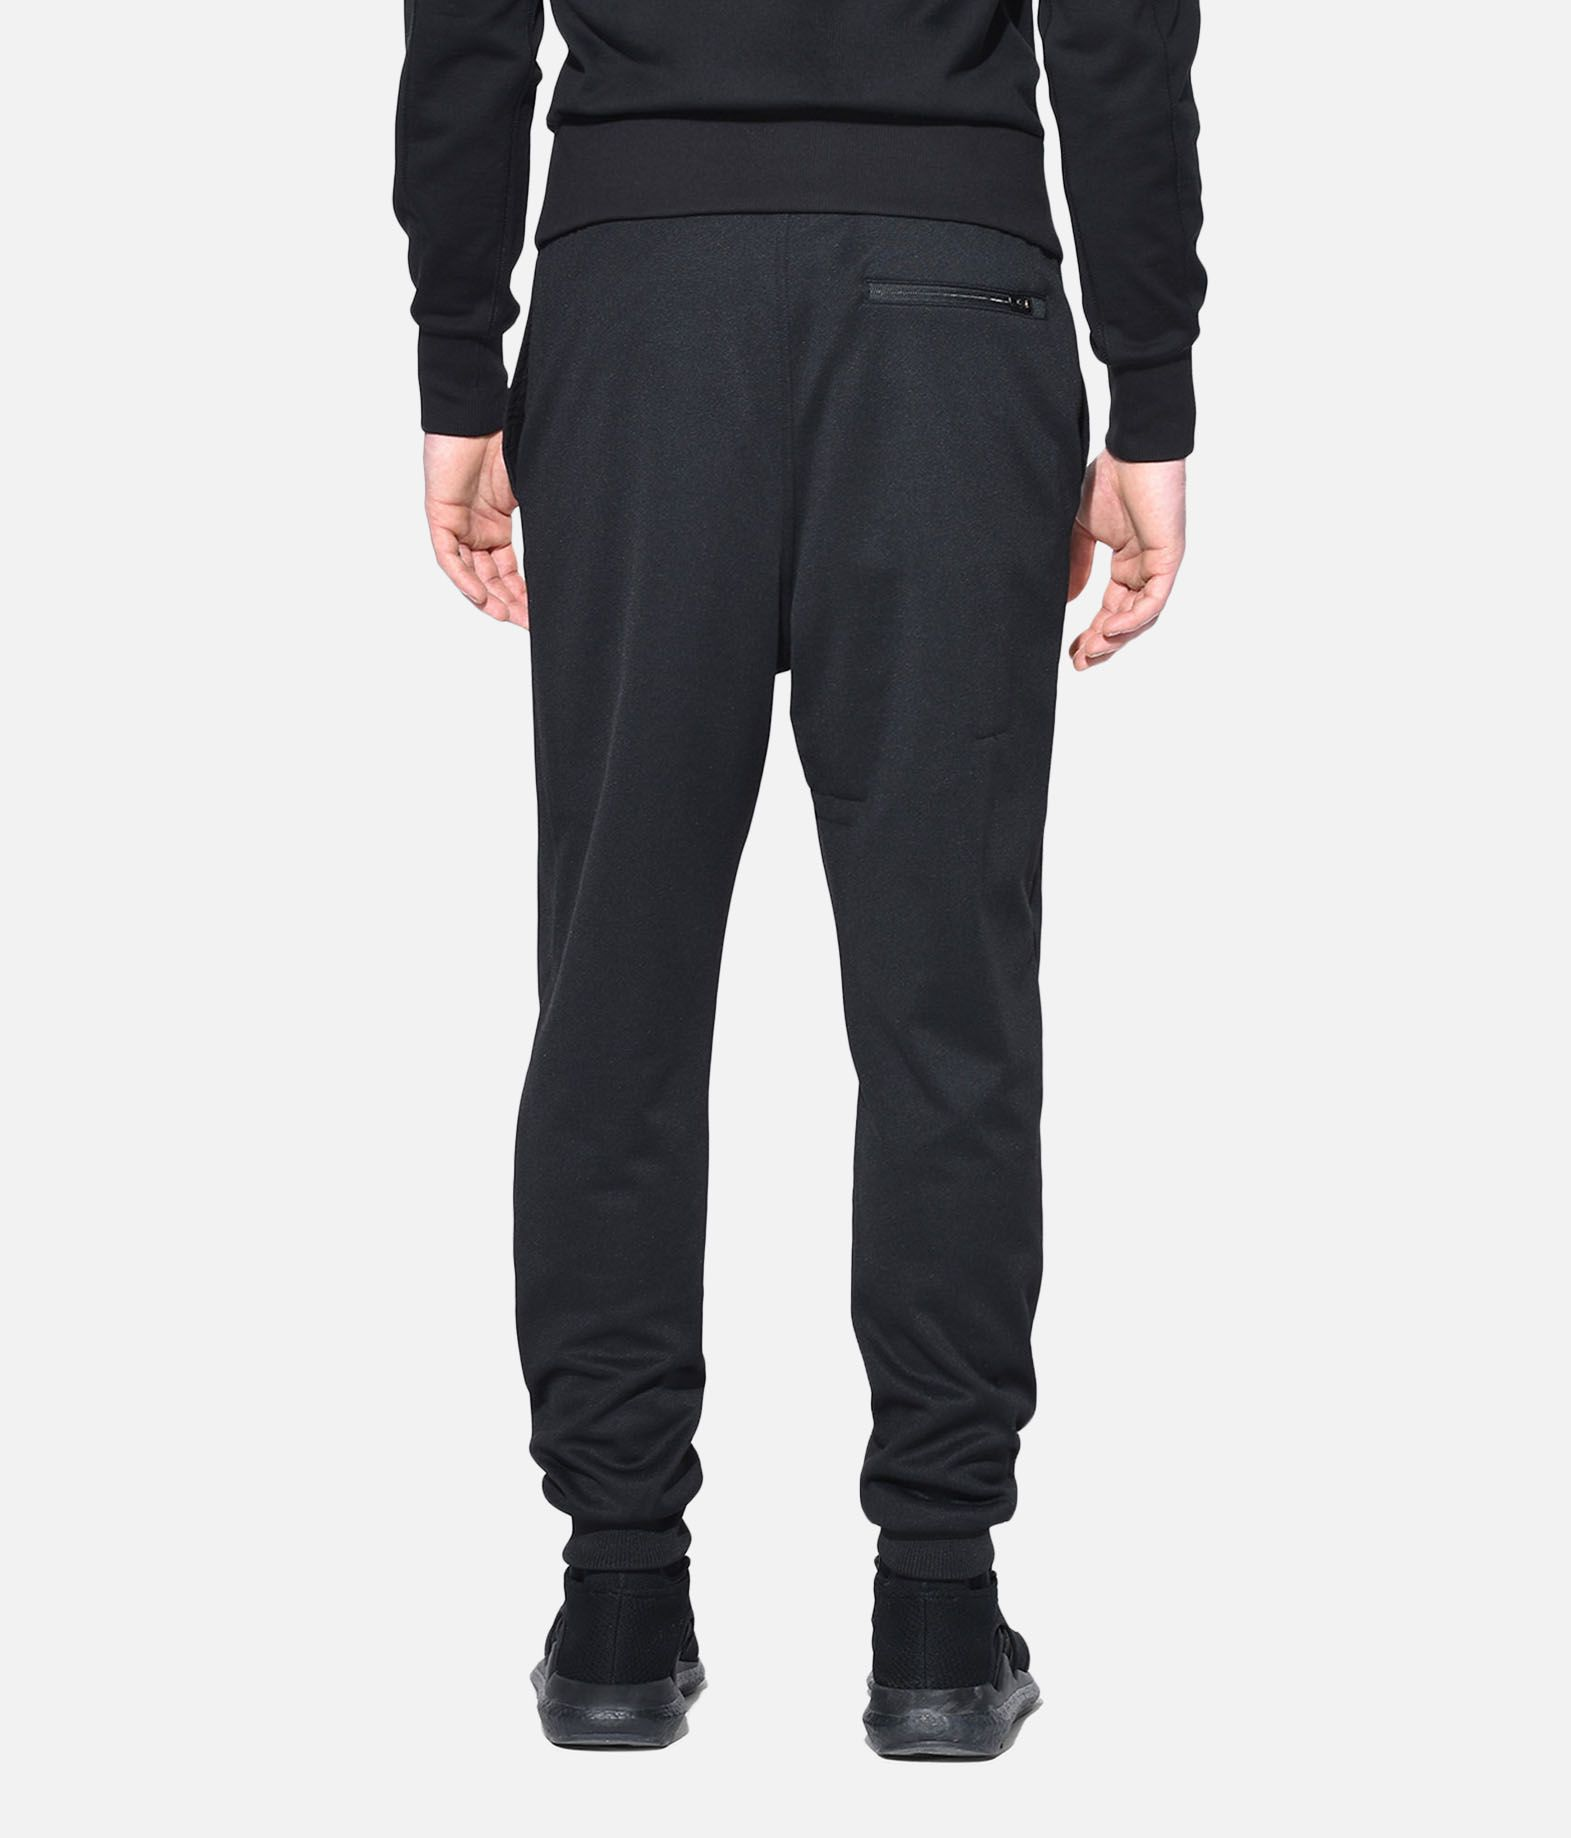 Y-3 Y-3 CLASSIC TRACK PANTS Track pant Homme d